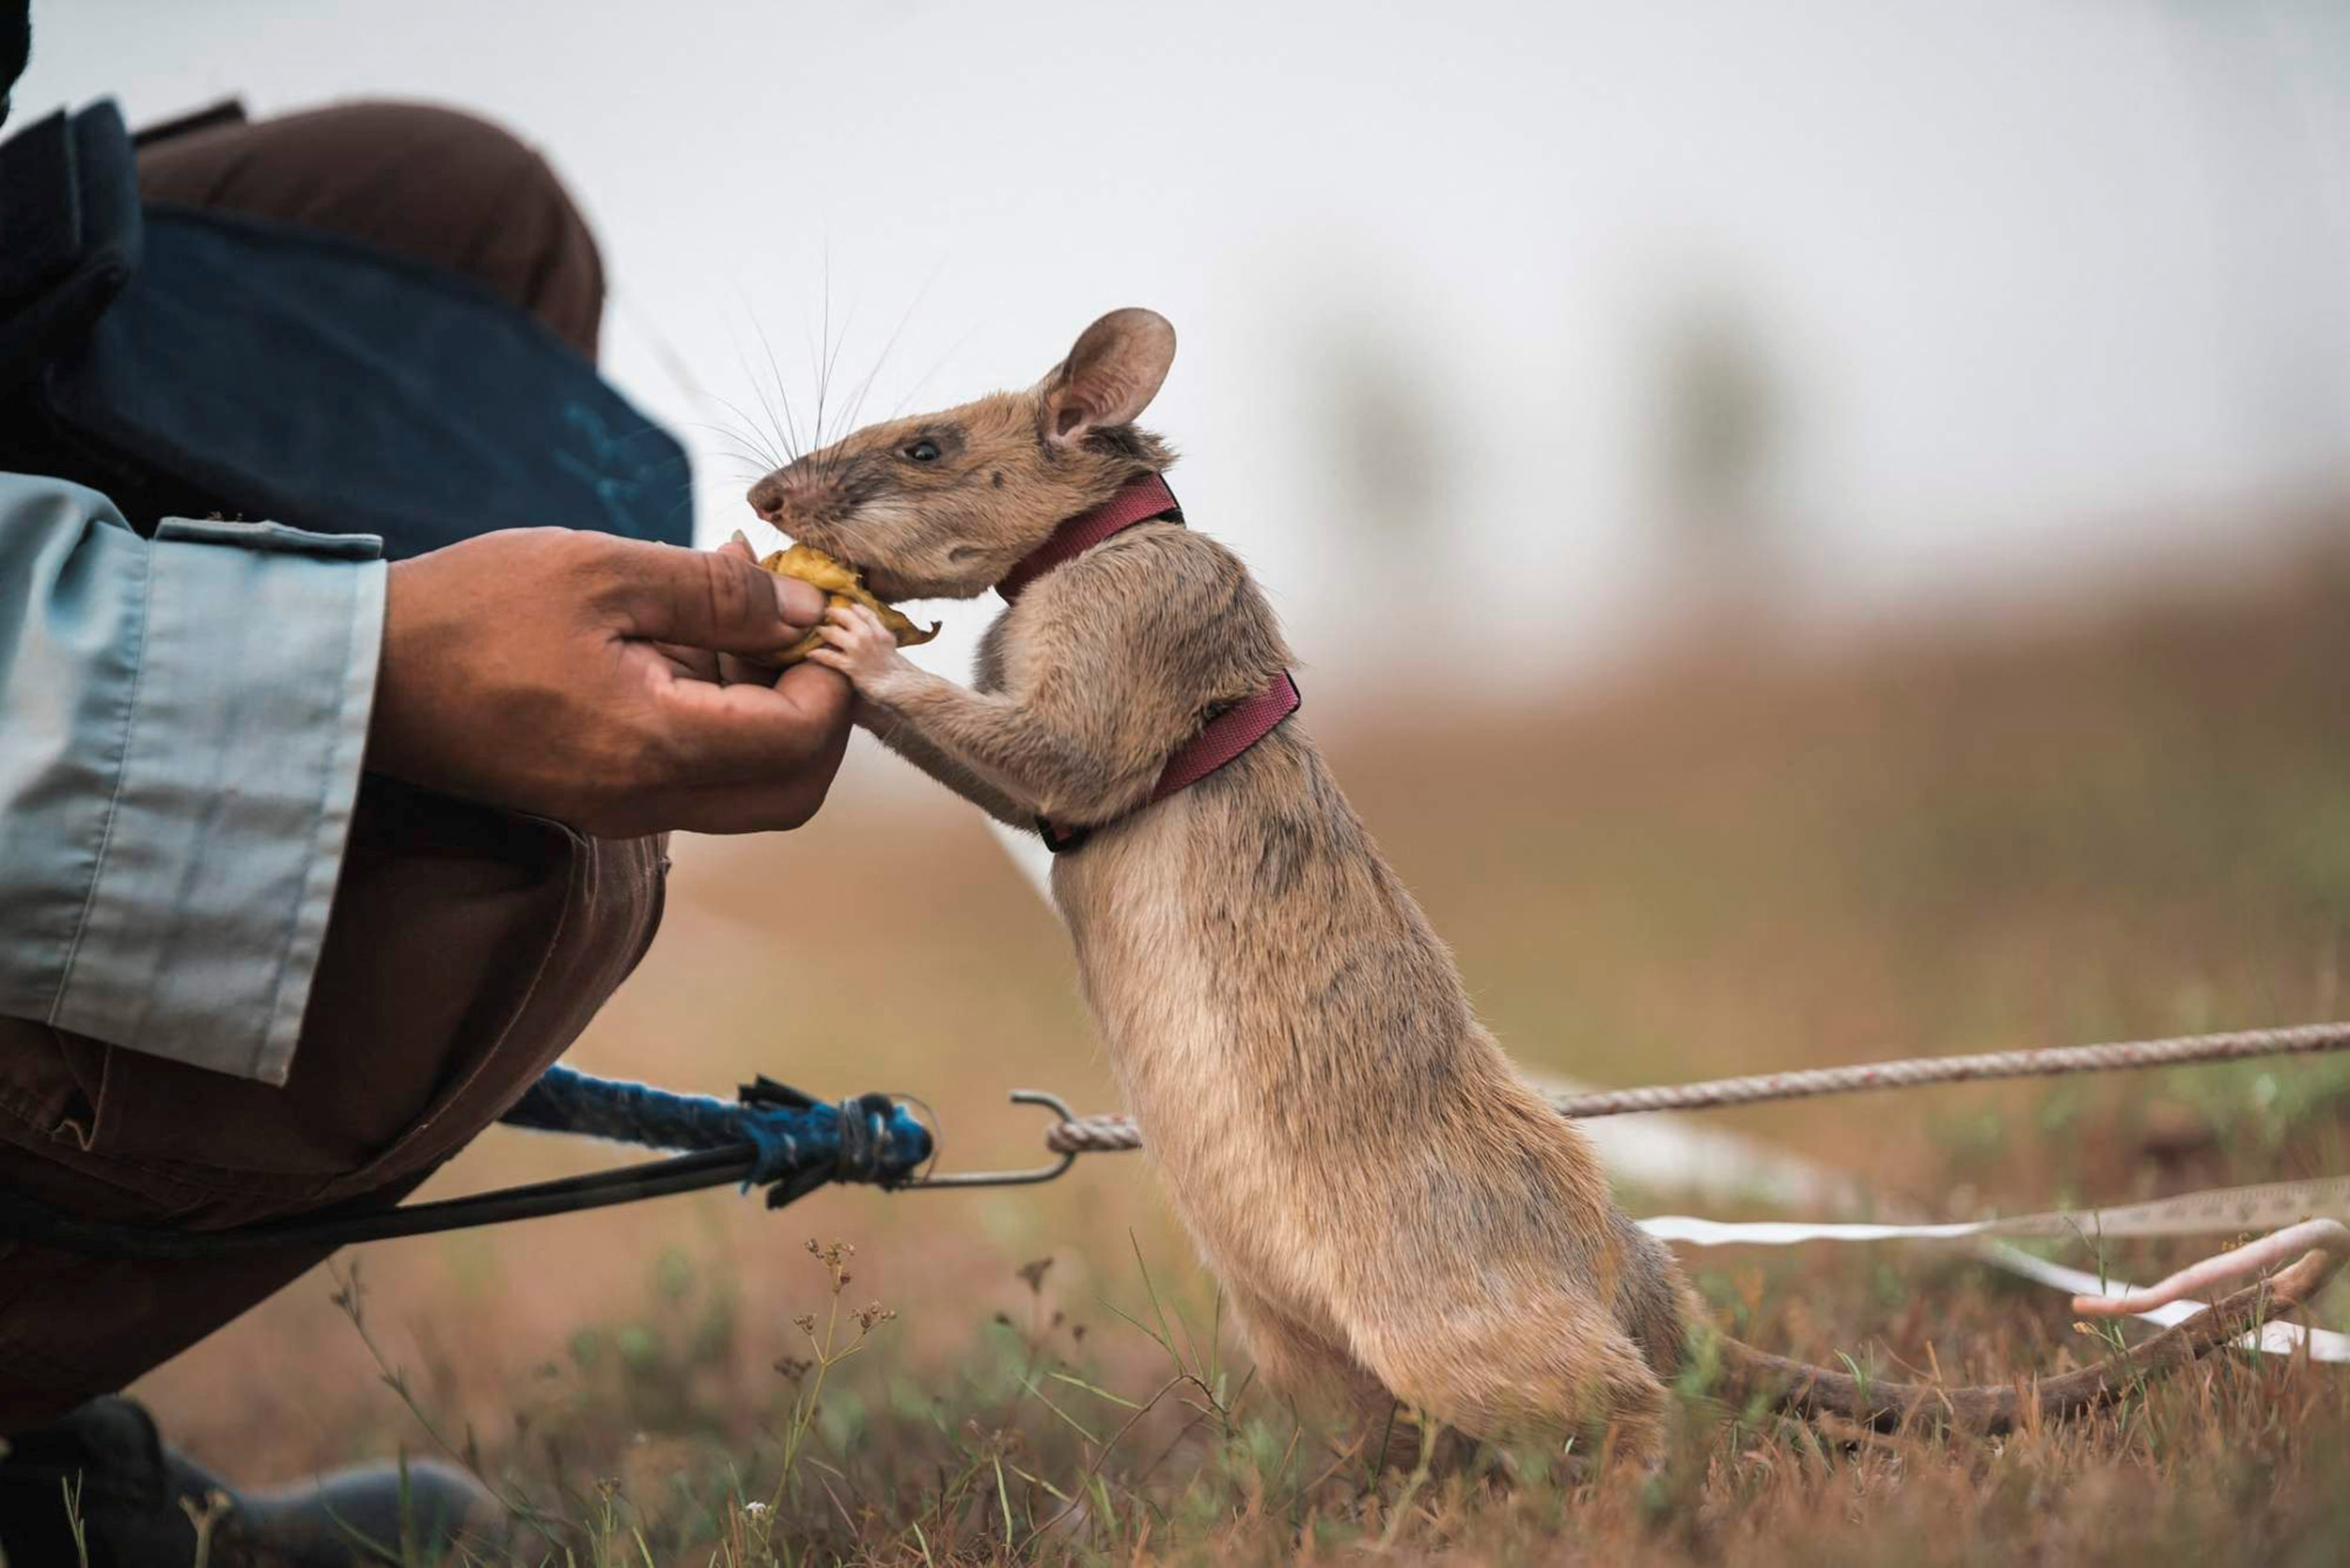 Rat called Magawa awarded prestigious gold medal for Cambodia landmine  detection